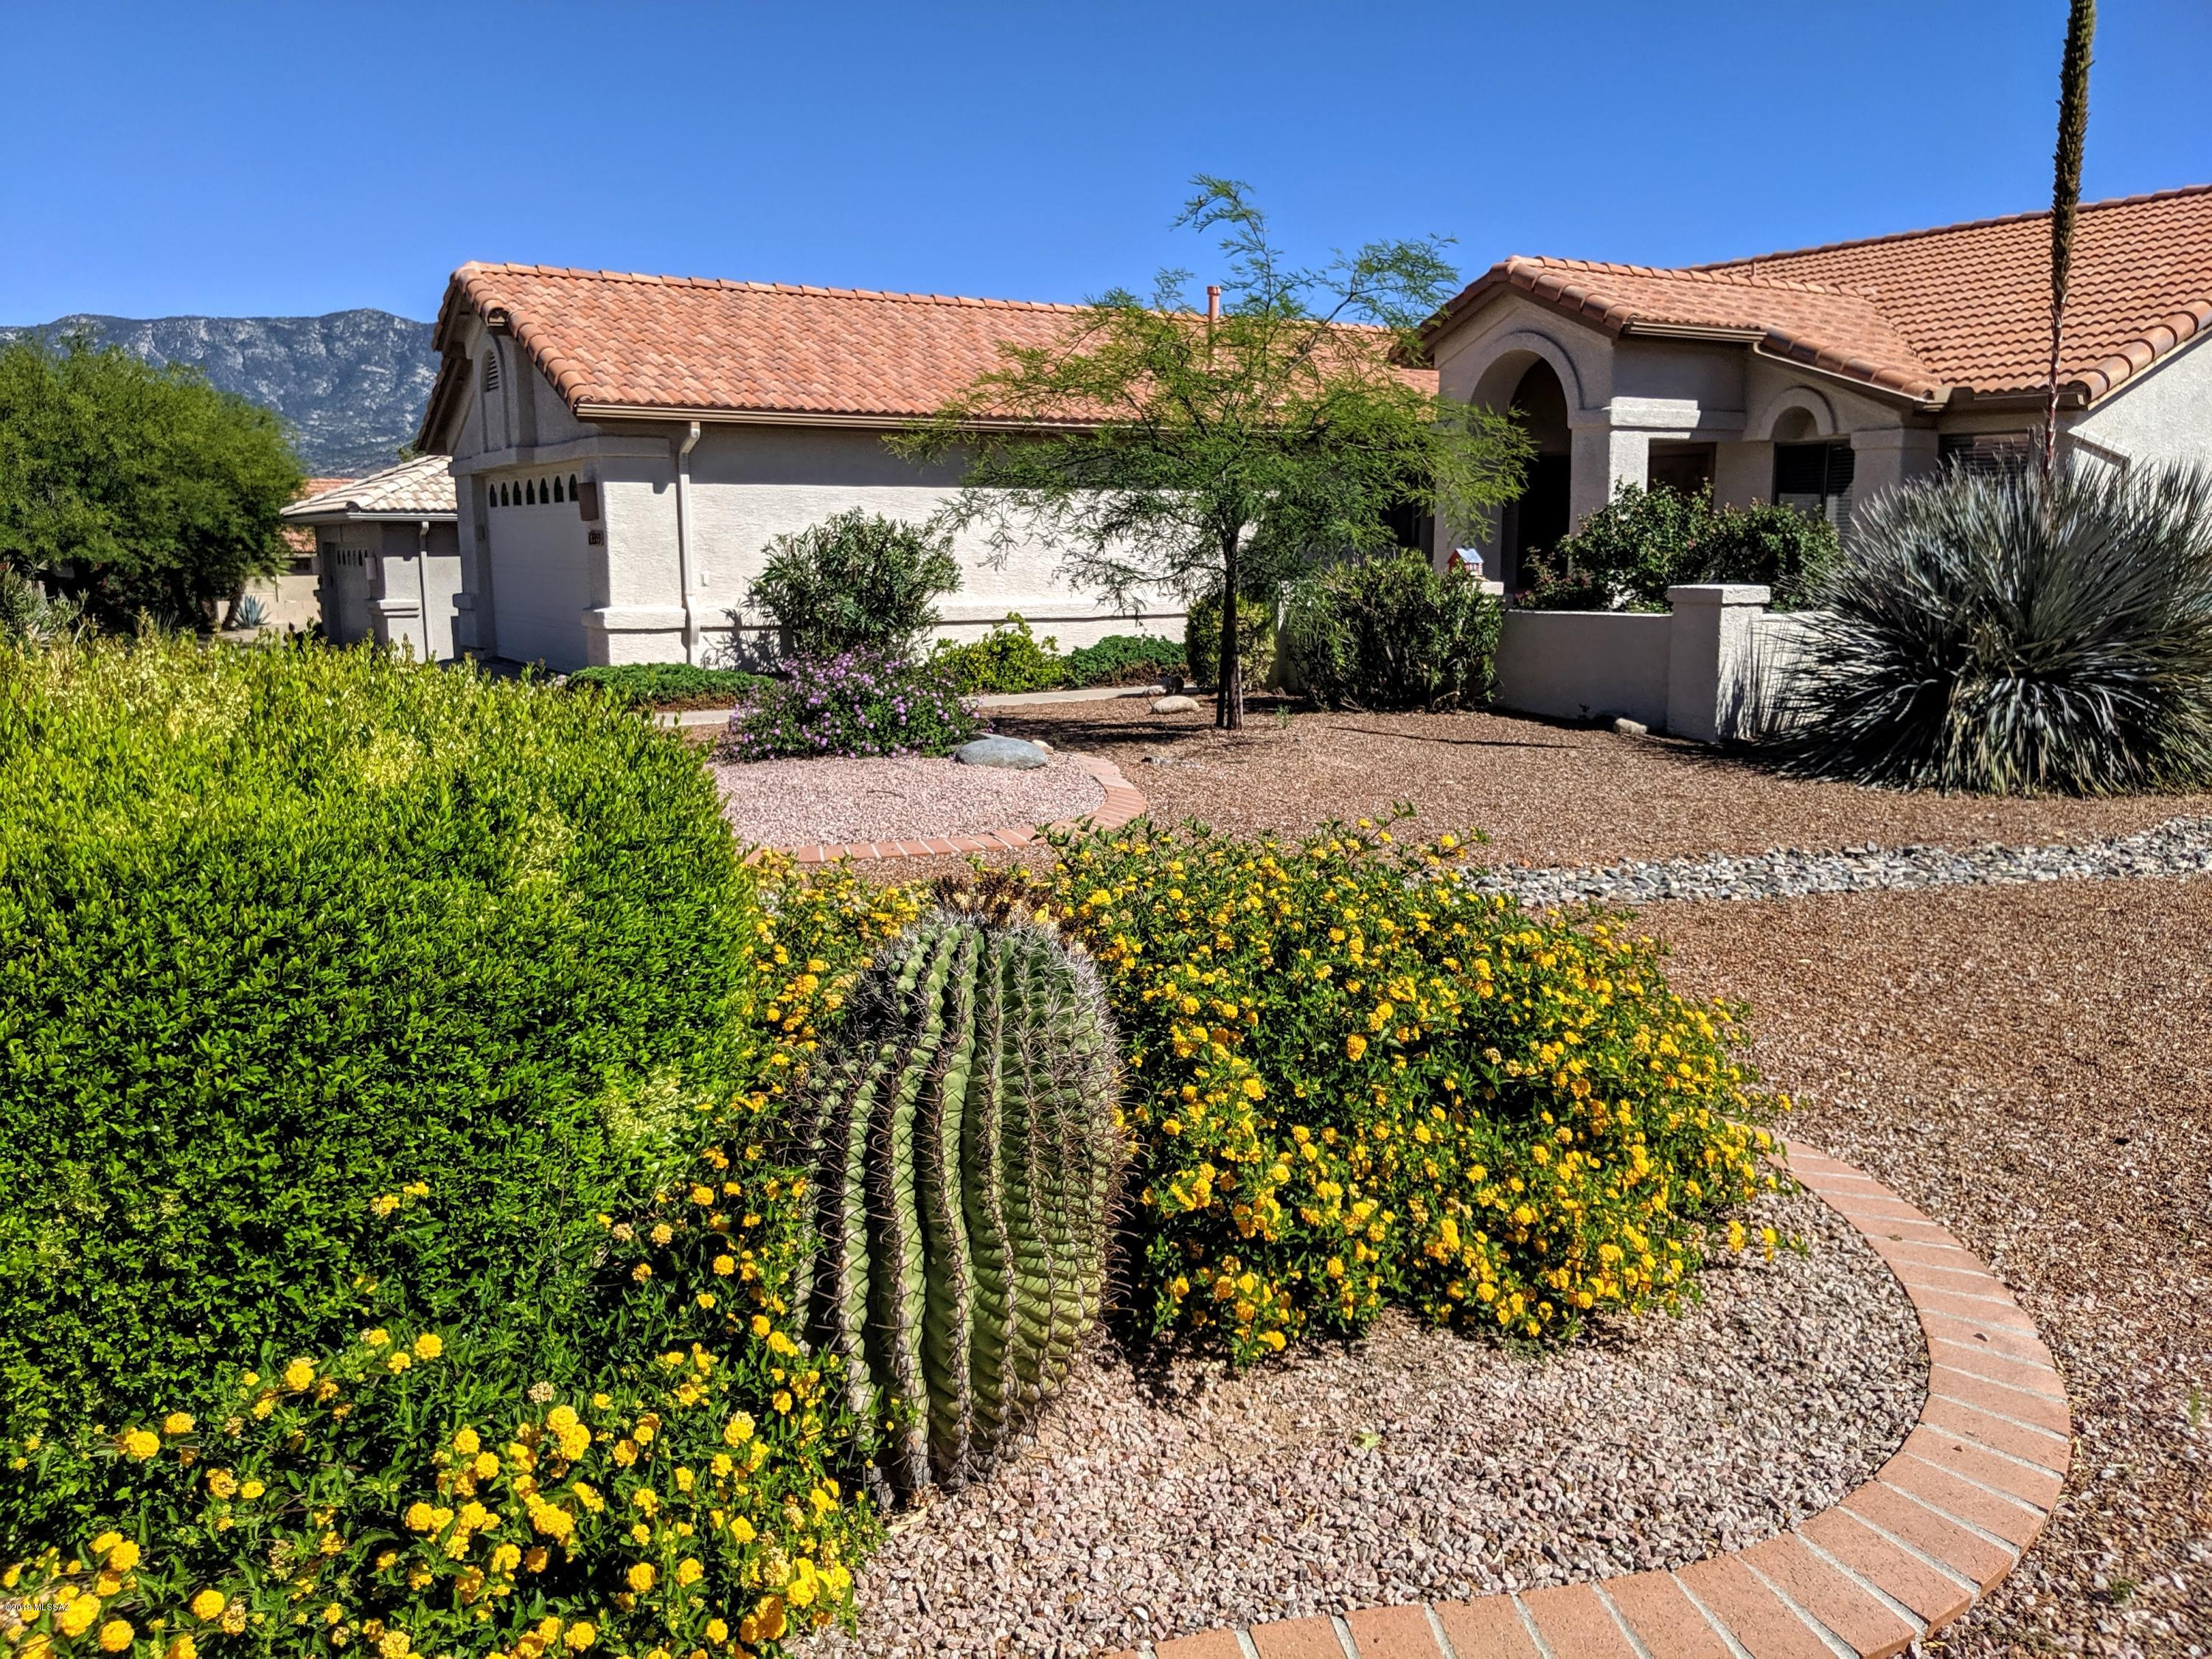 Photo of 63359 E Whispering Tree Lane, Tucson, AZ 85739